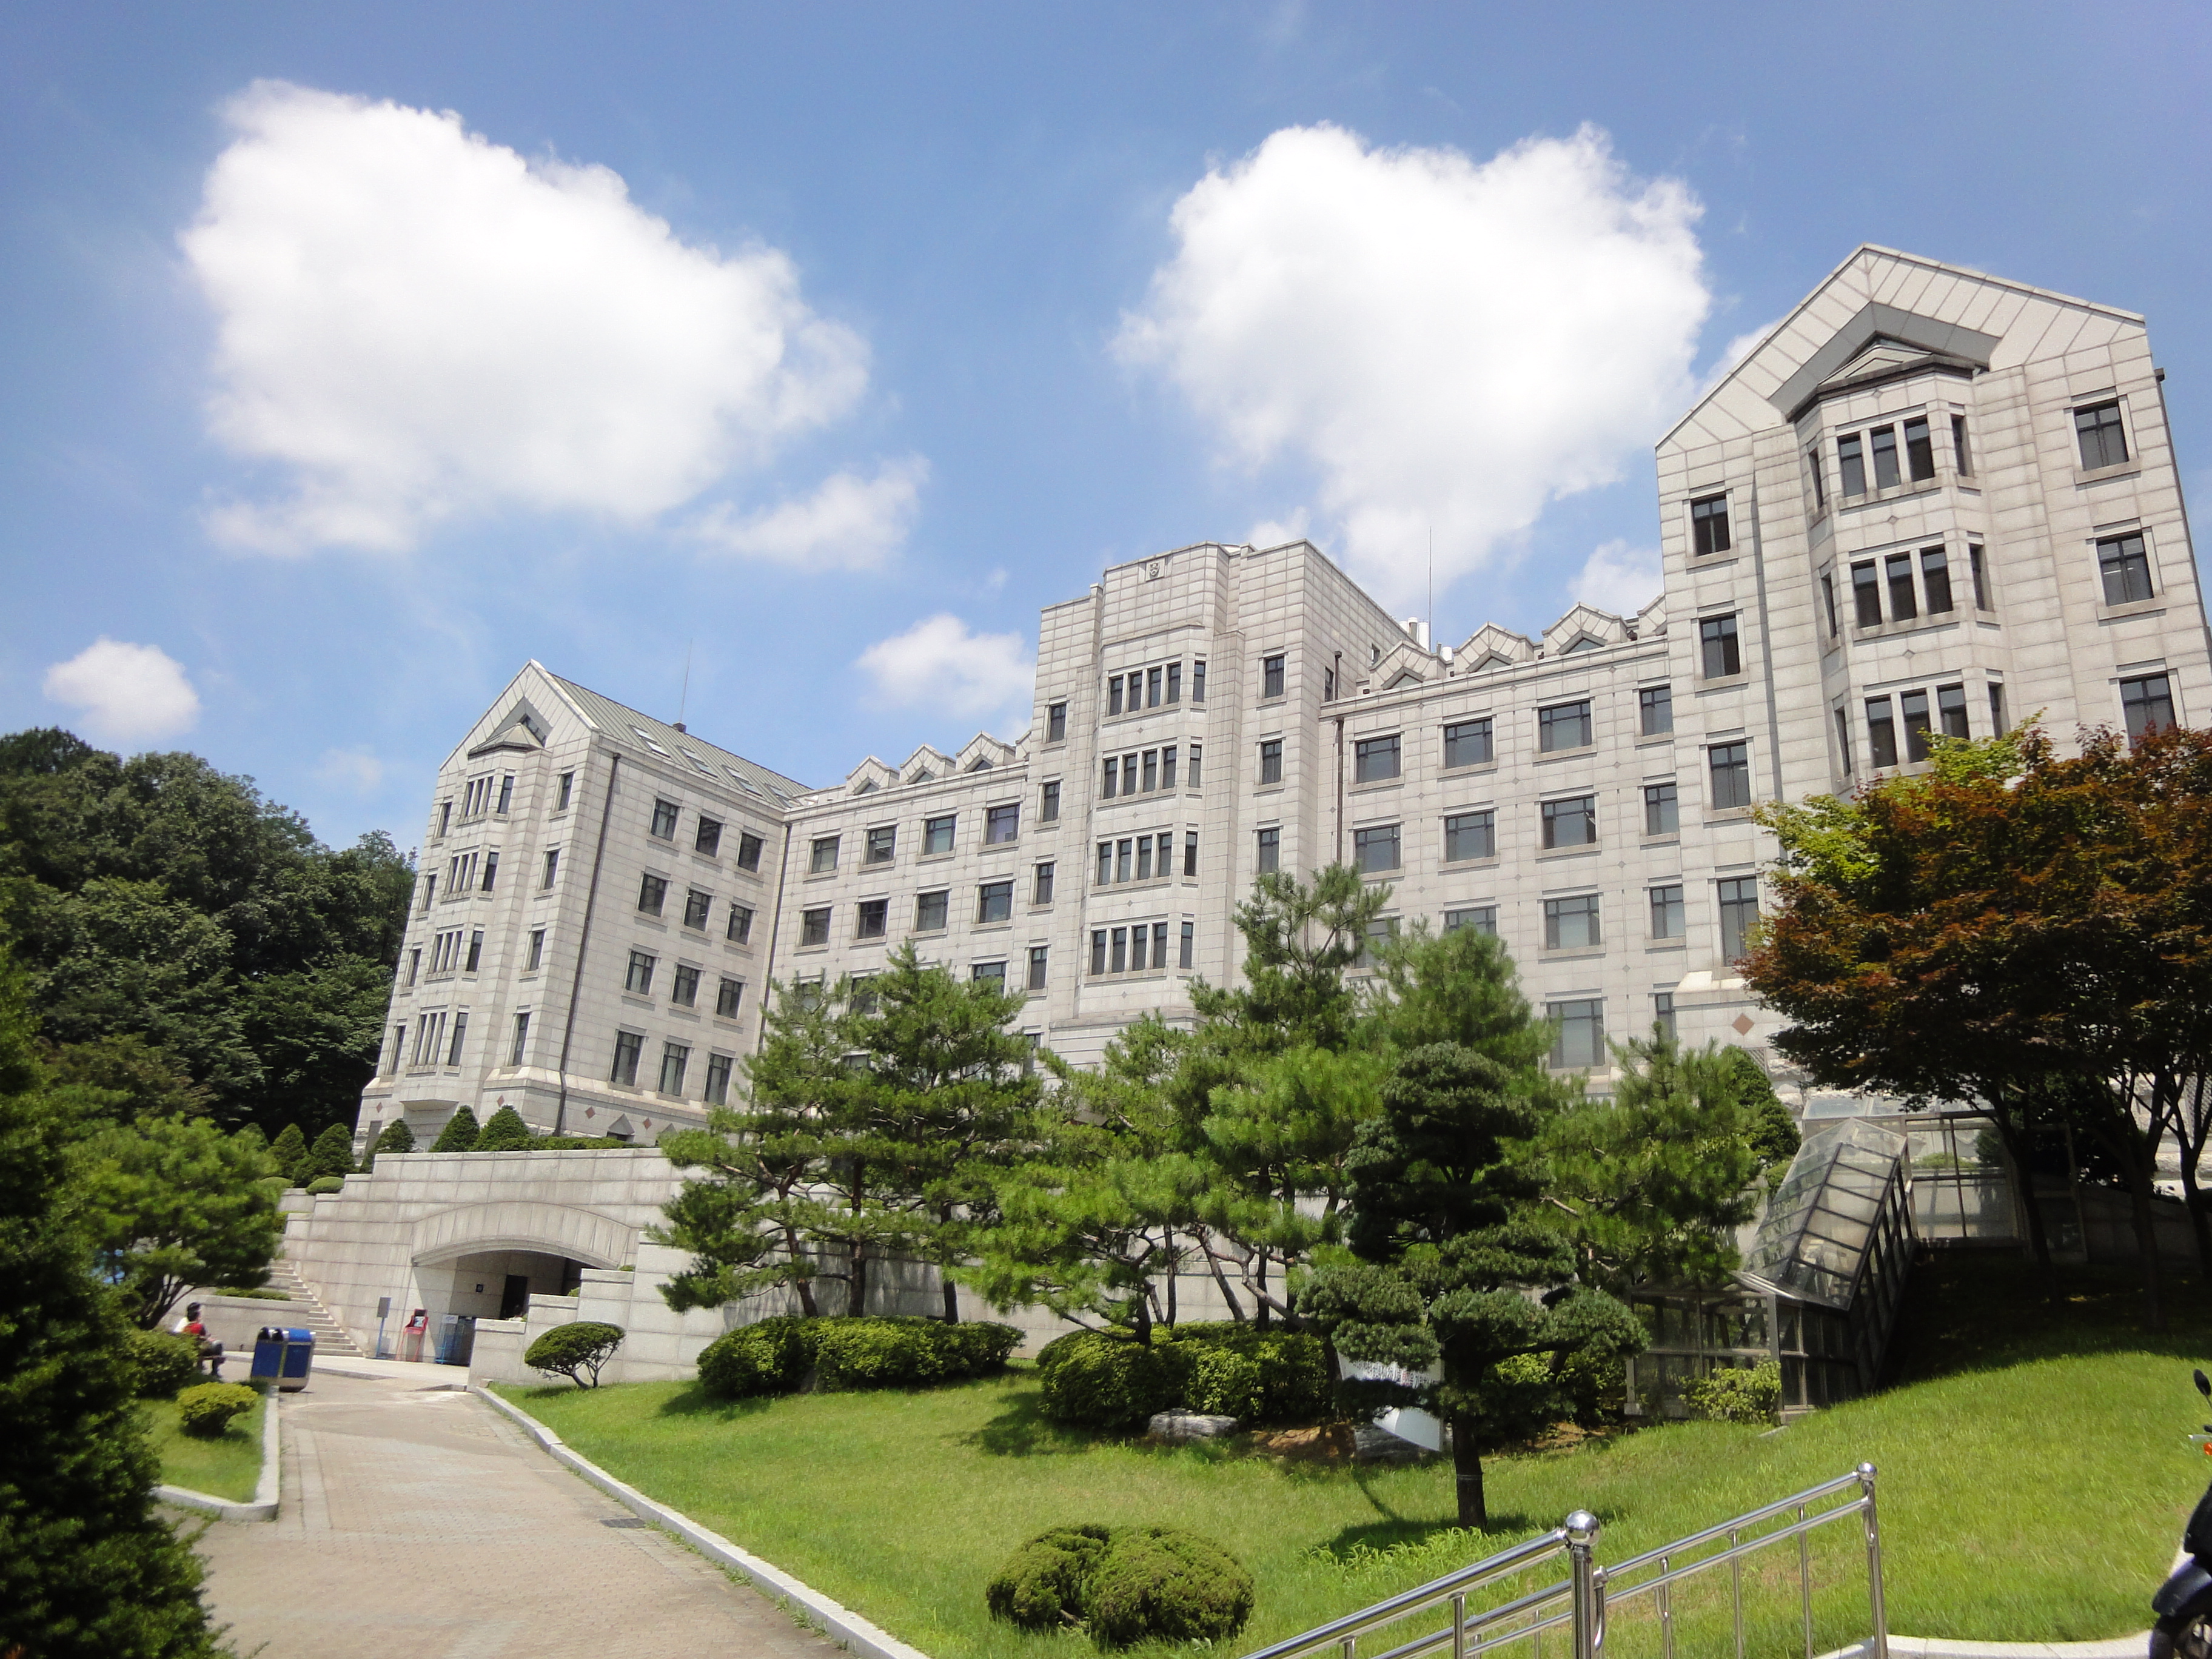 Yonsei University in Seoul, South Korea